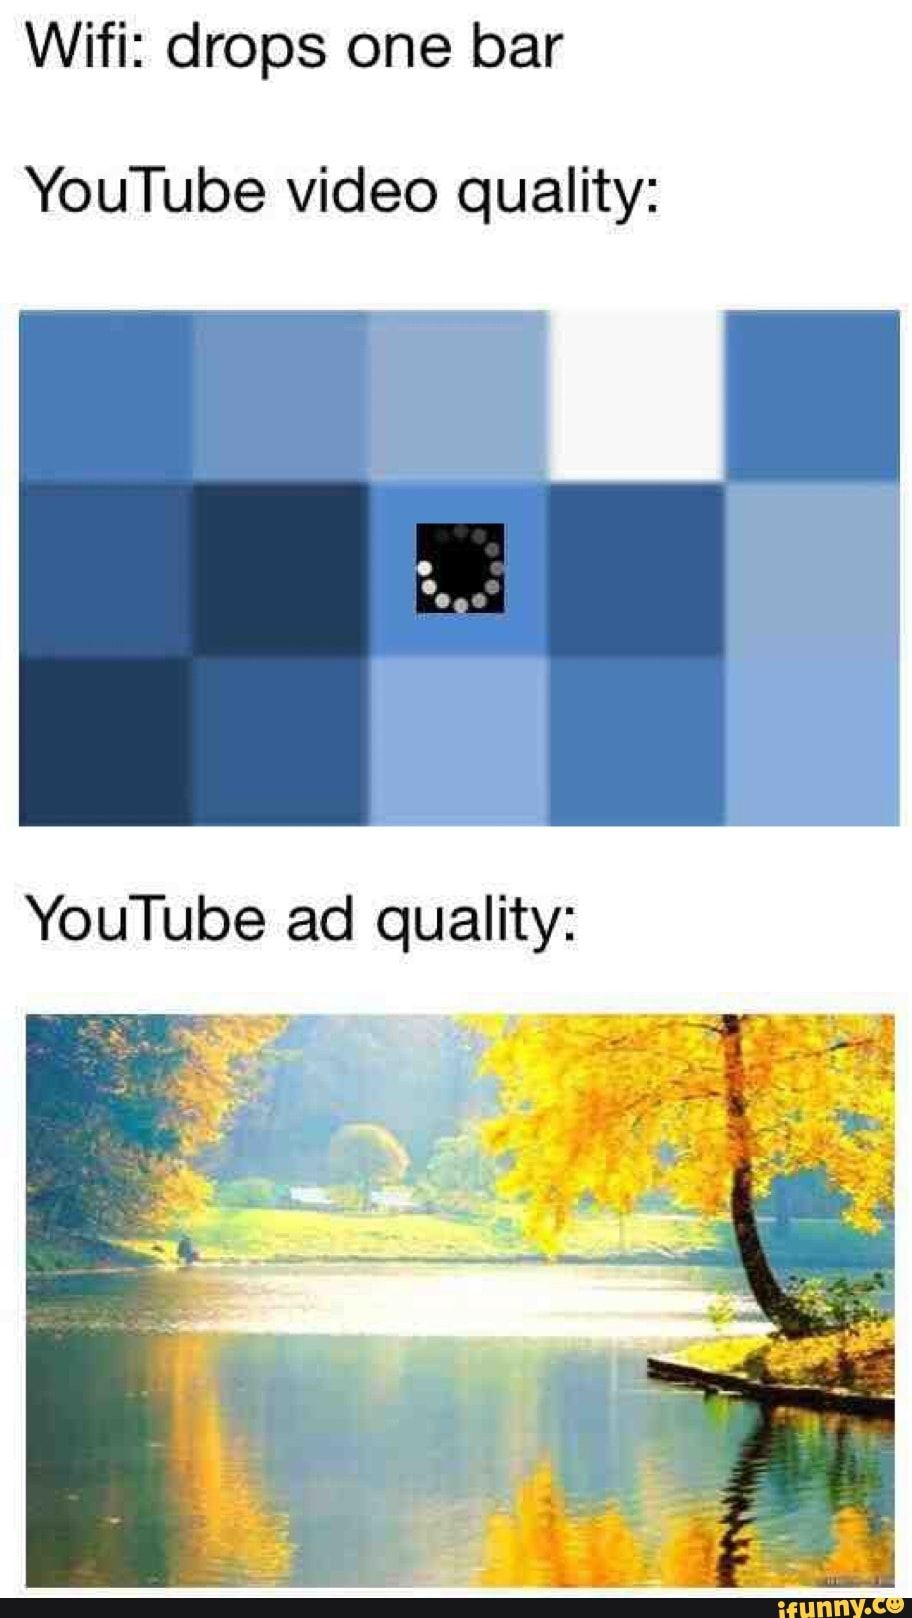 Wifi Drops One Bar Youtube Video Quality Ifunny Funny Relatable Memes Funny Memes Stupid Funny Memes